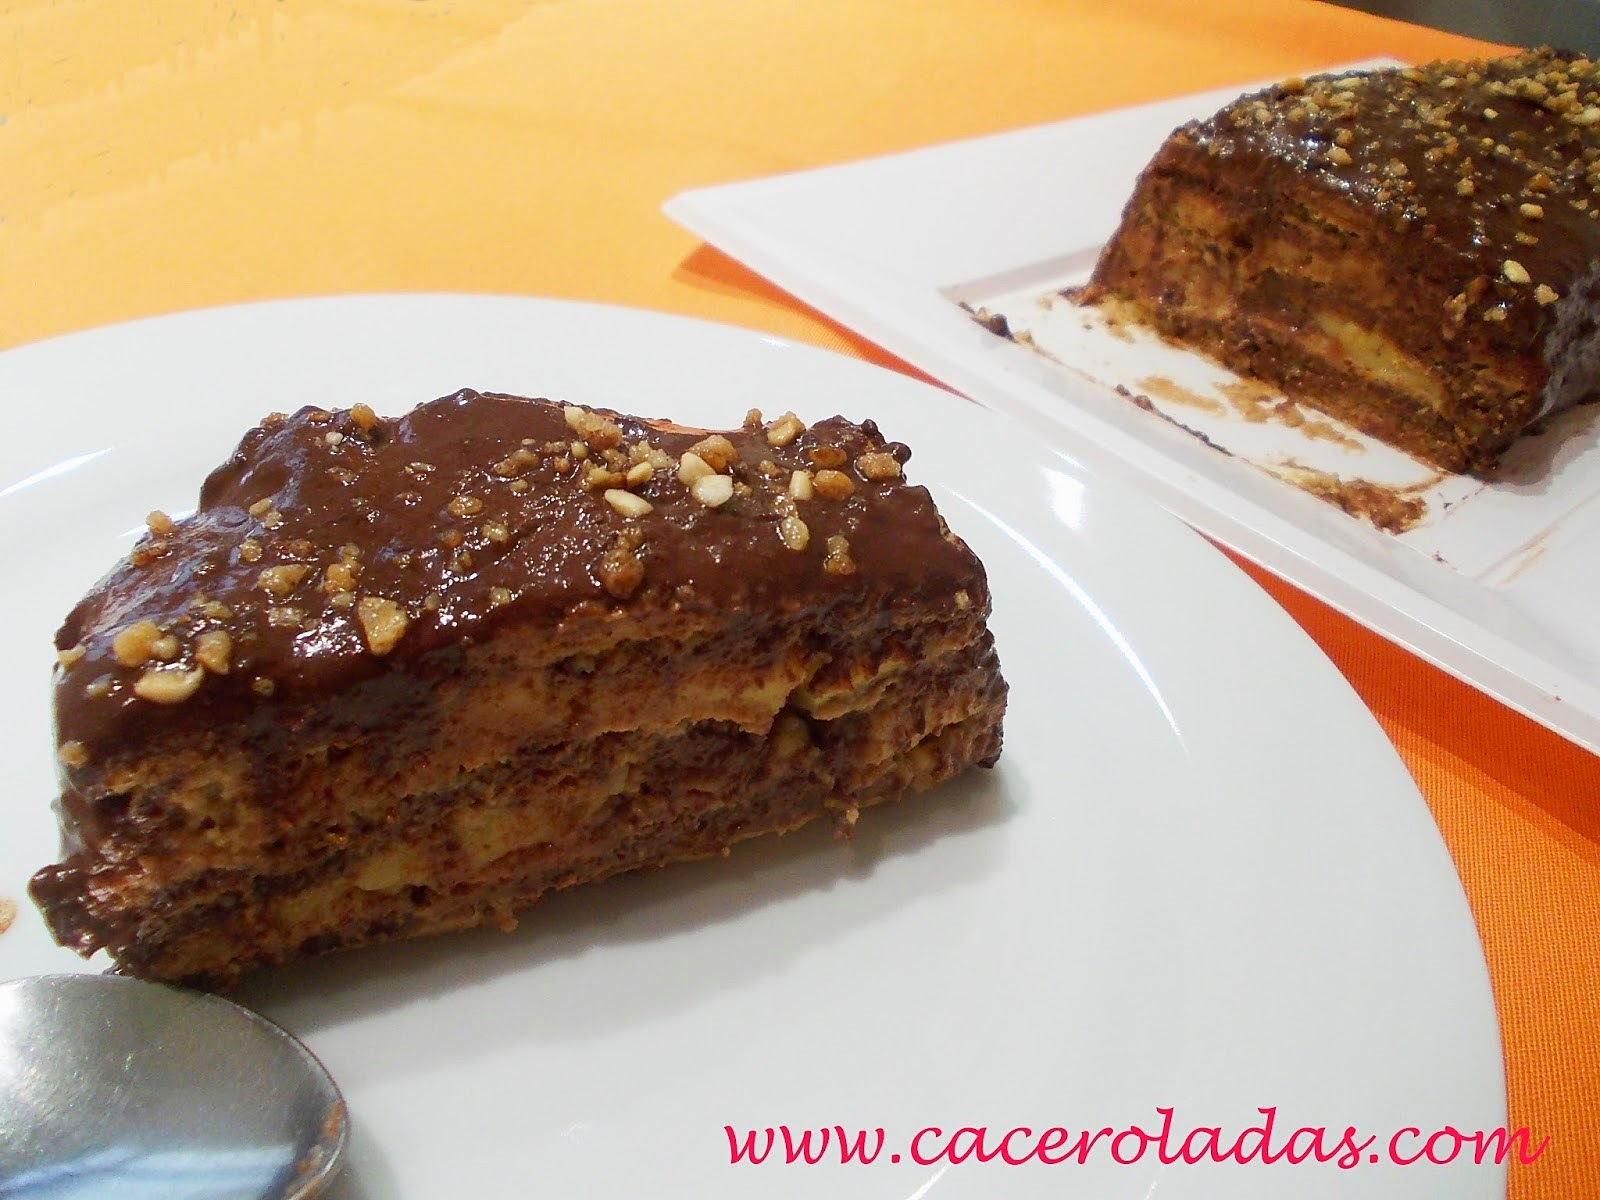 Tarta de galletas con chocolate y crema